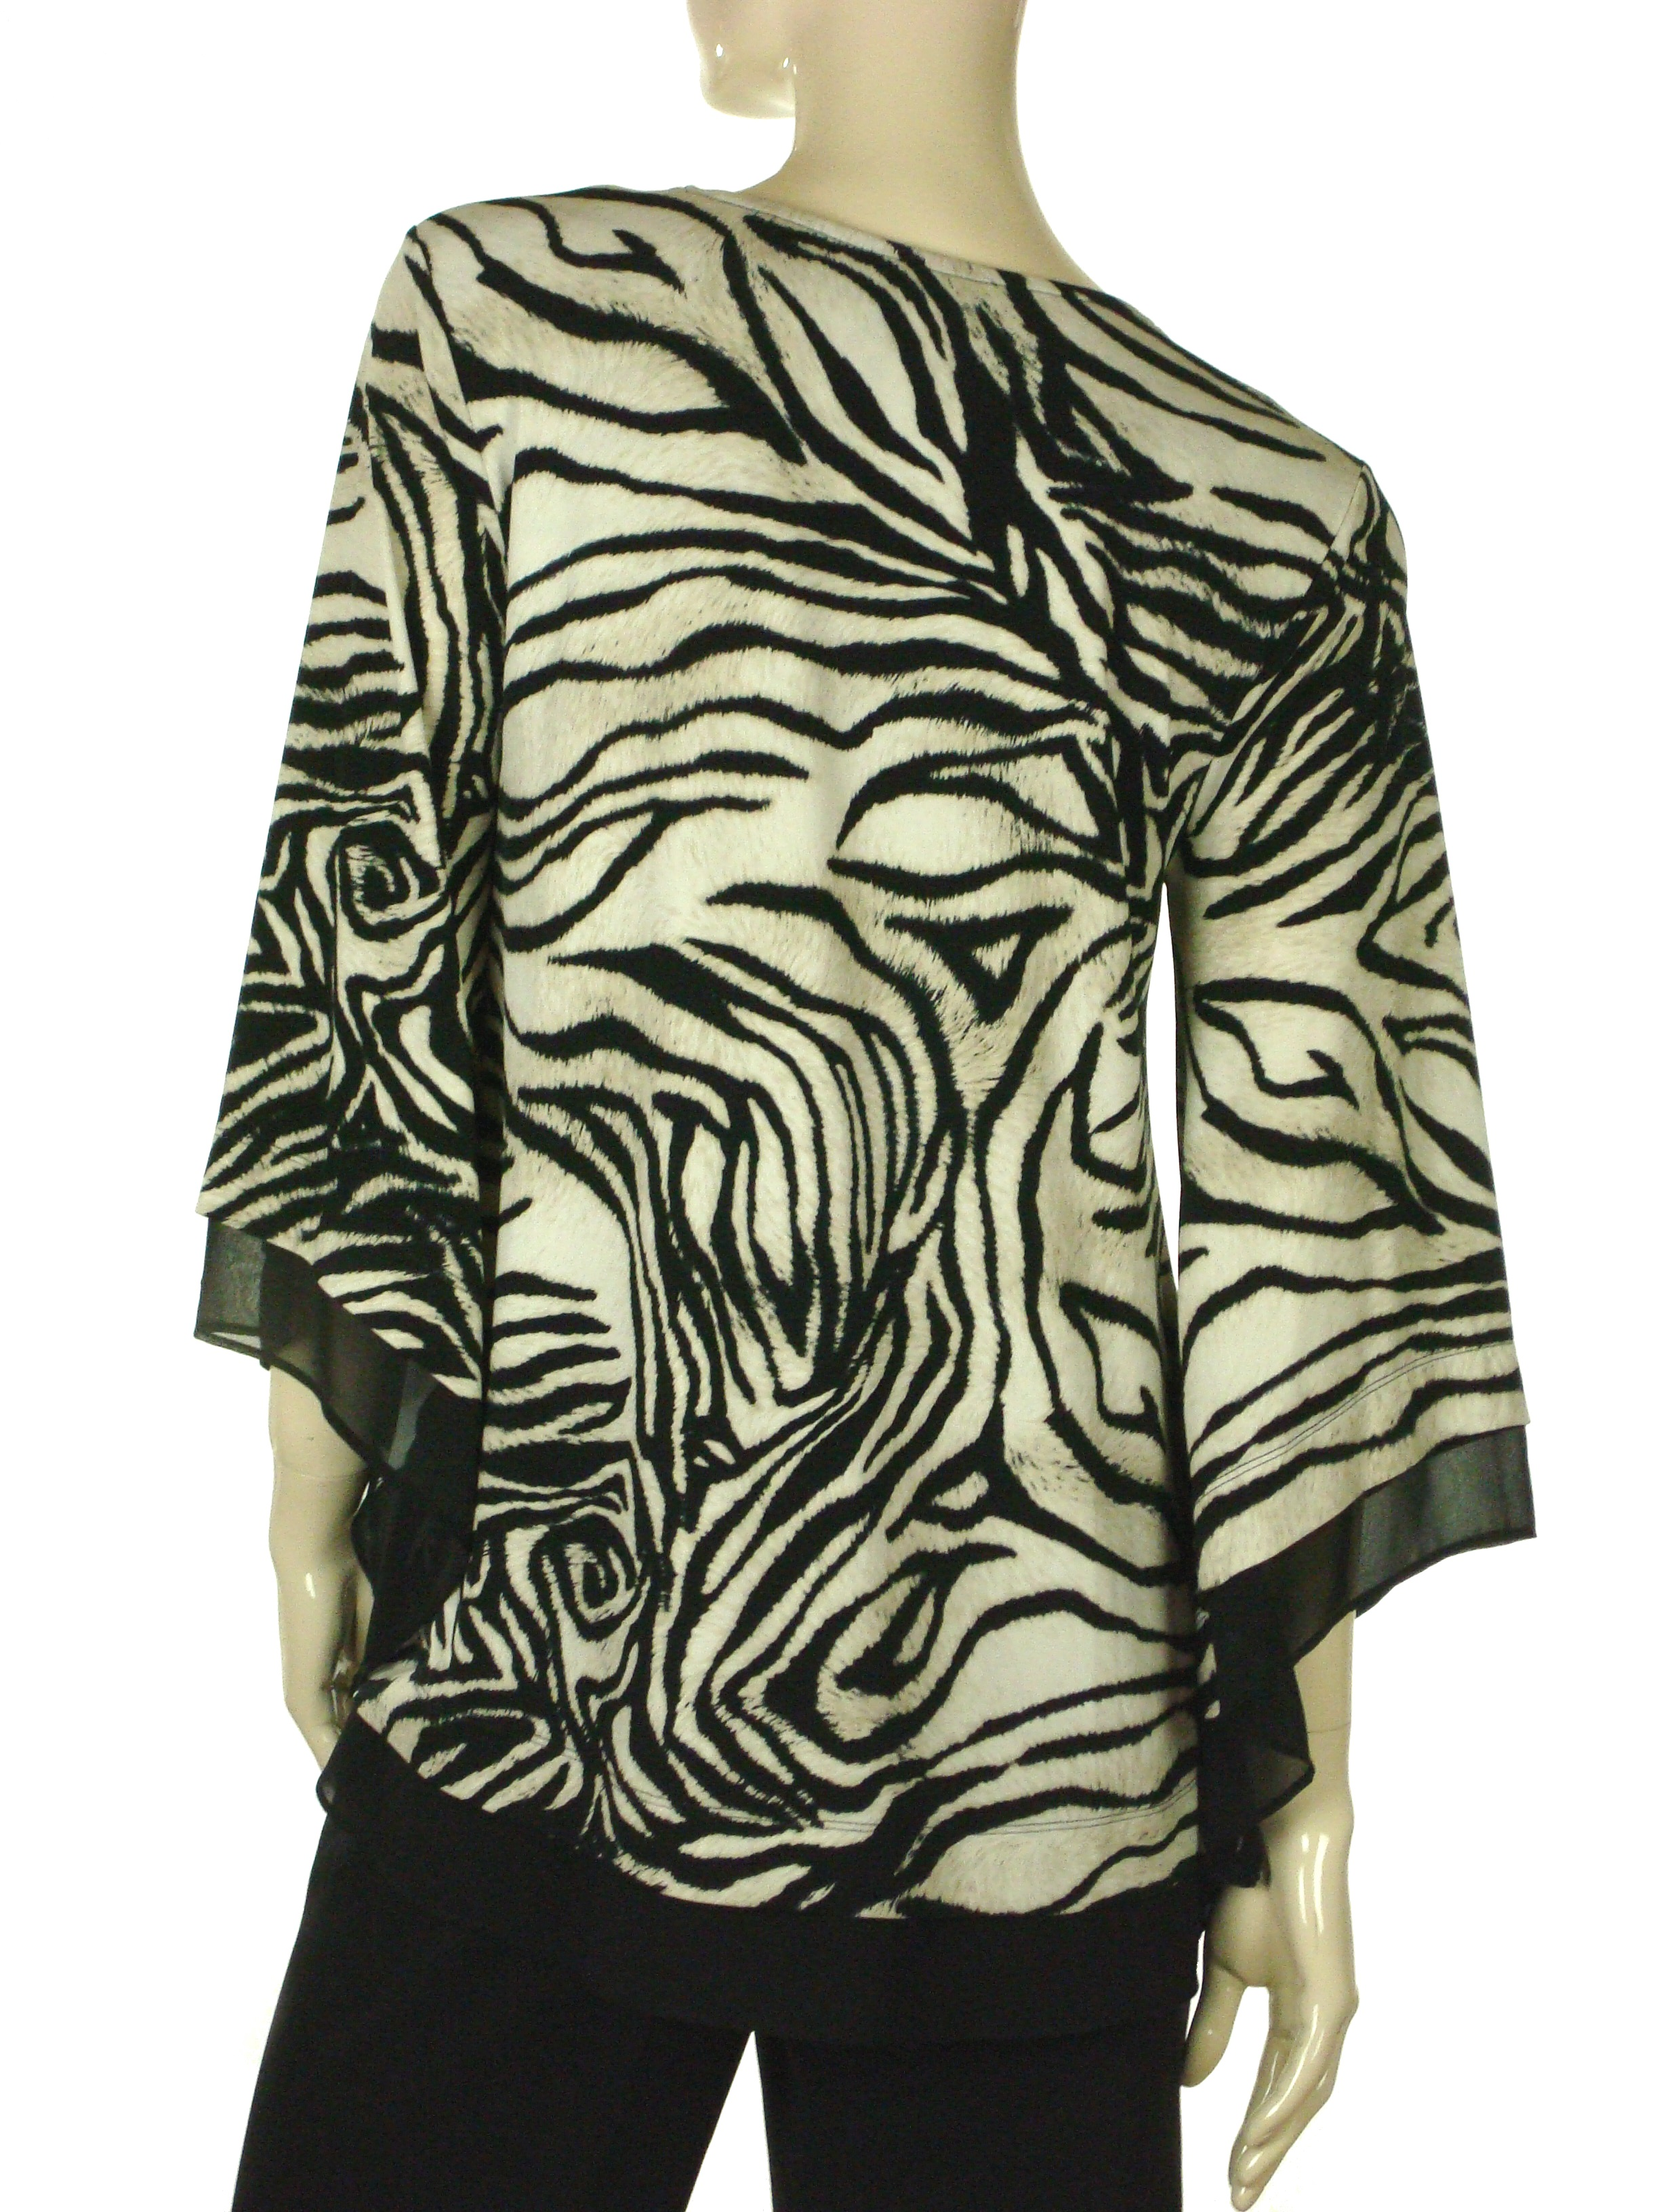 Alfani Womens Black Floral Bell Sleeves Tie-Front Blouse Top S BHFO 2203